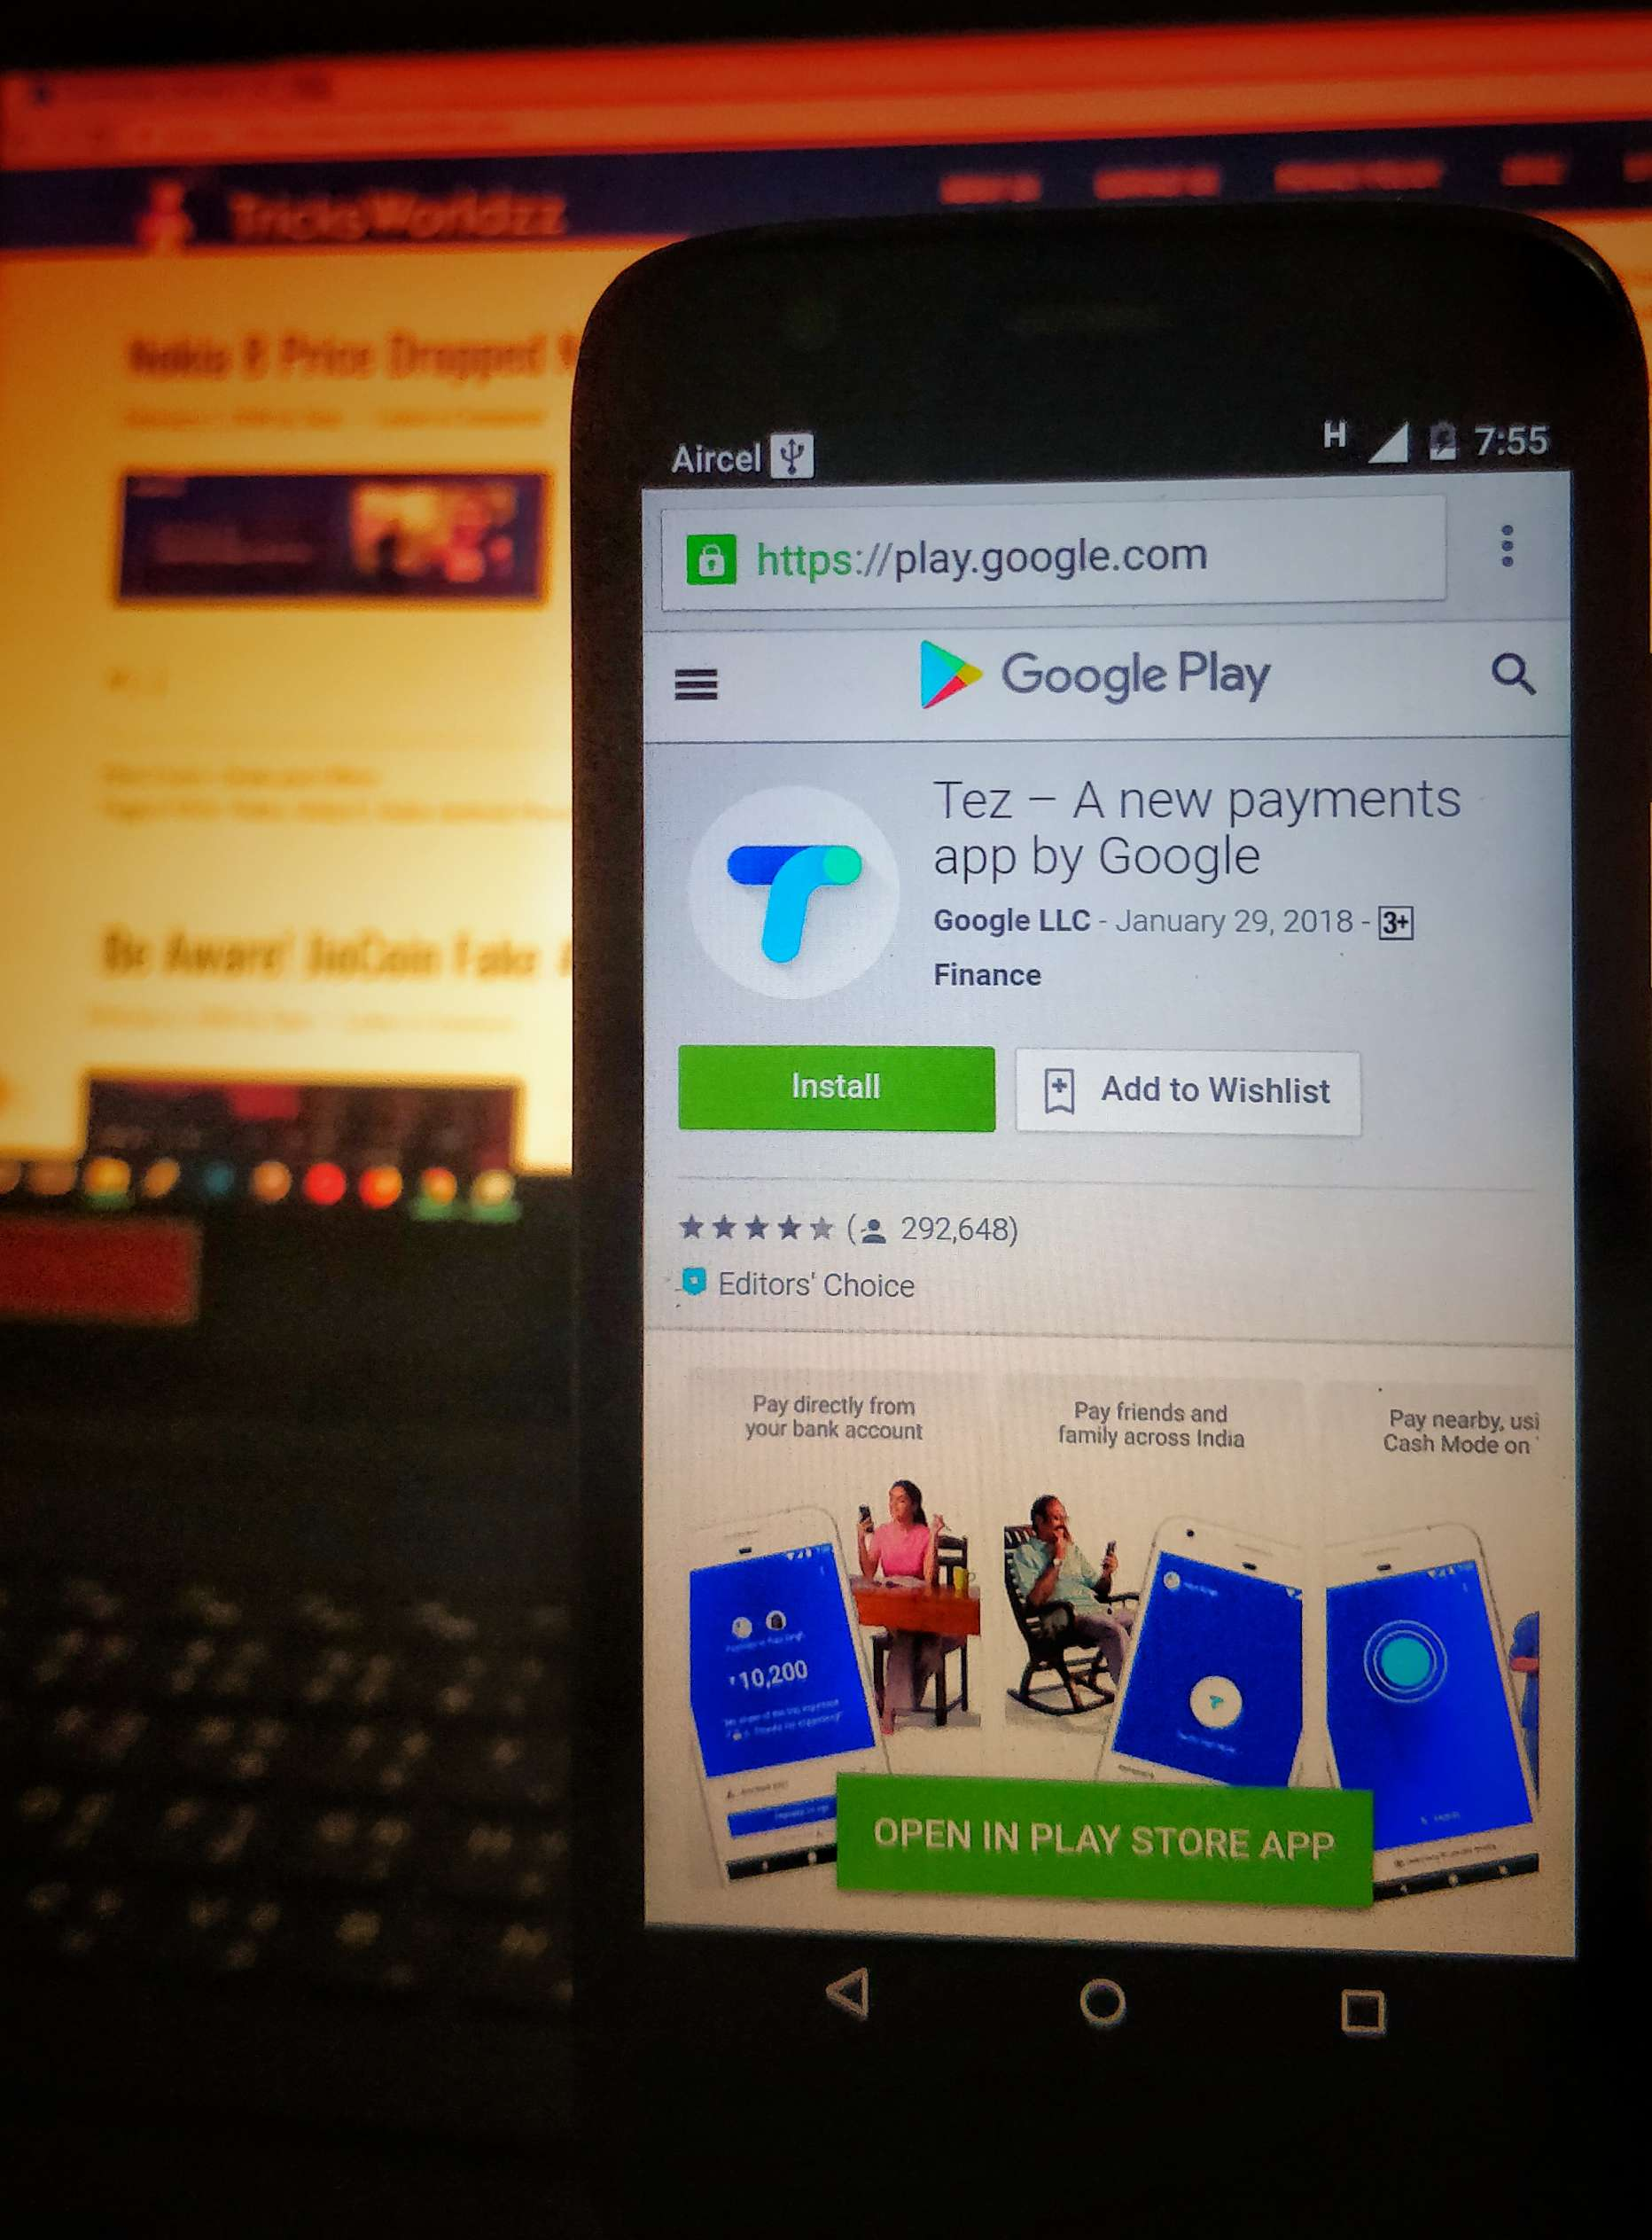 Tez App Get Rs 5000 Scratch Card on Paying Rent